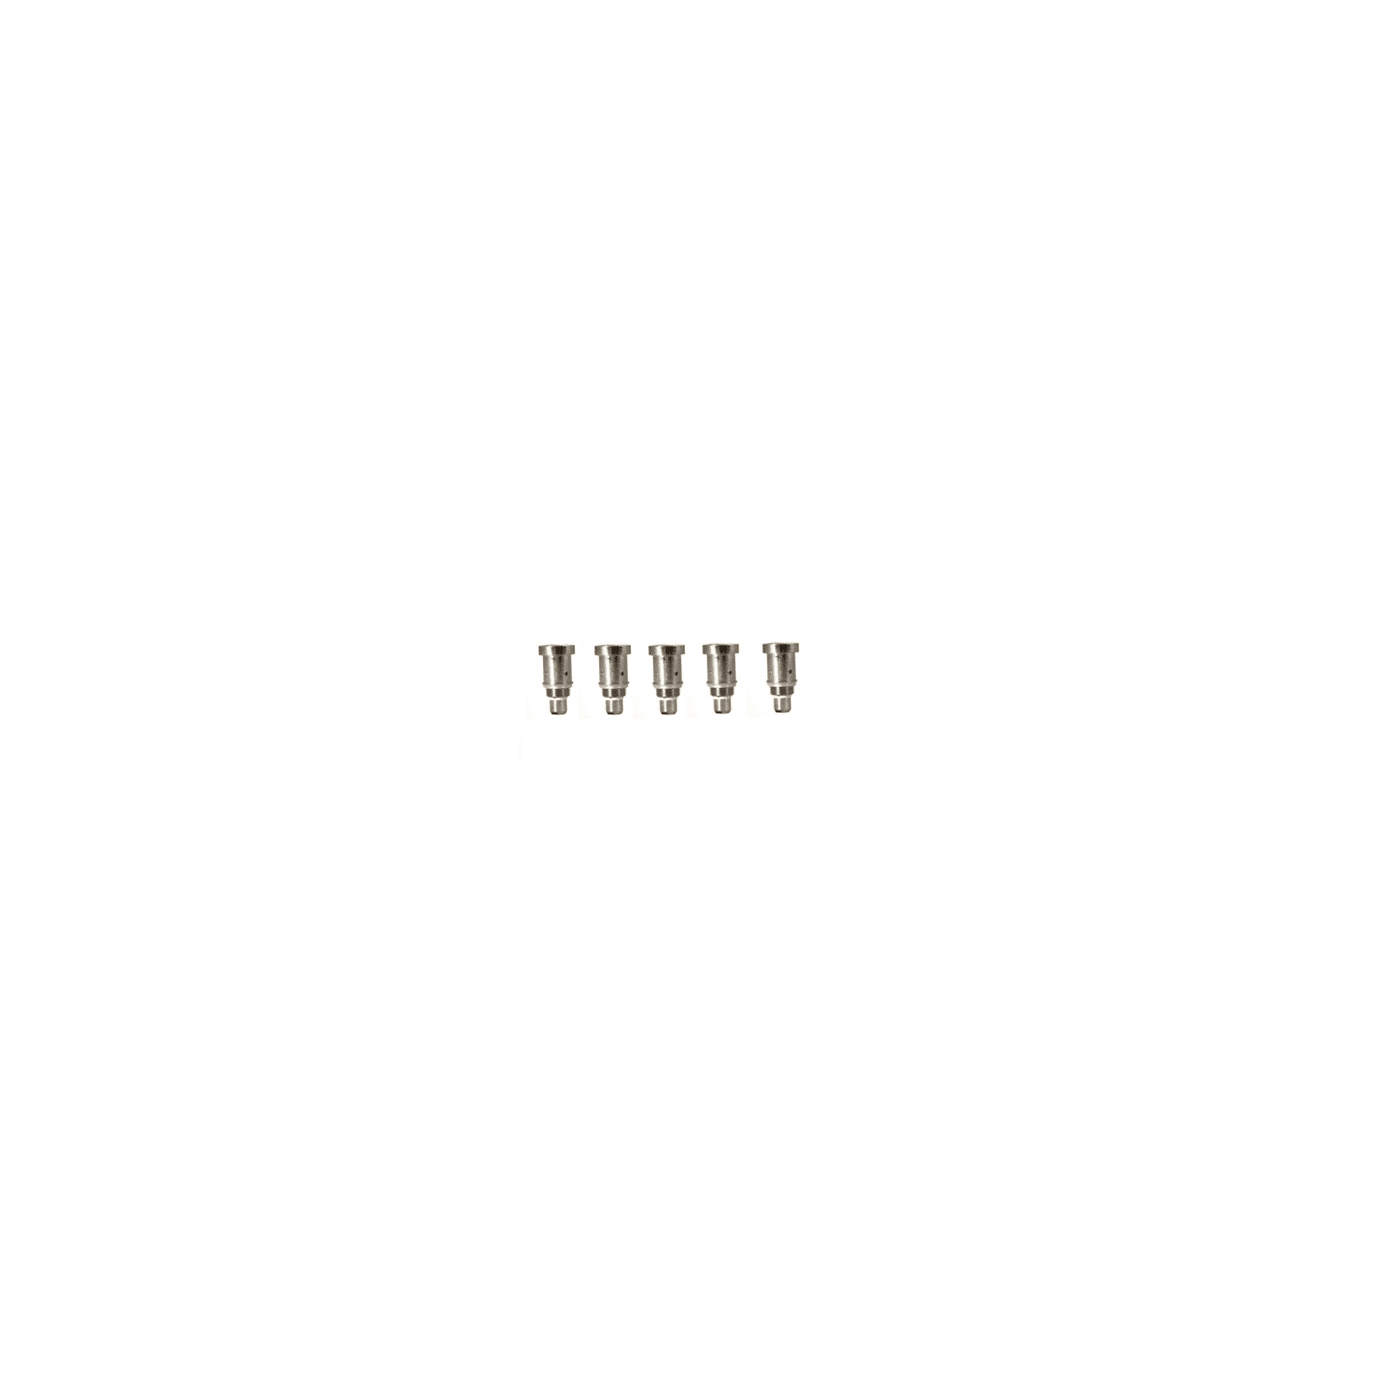 Aspire Bottom Dual Coil Replacement Head - 5 Pack